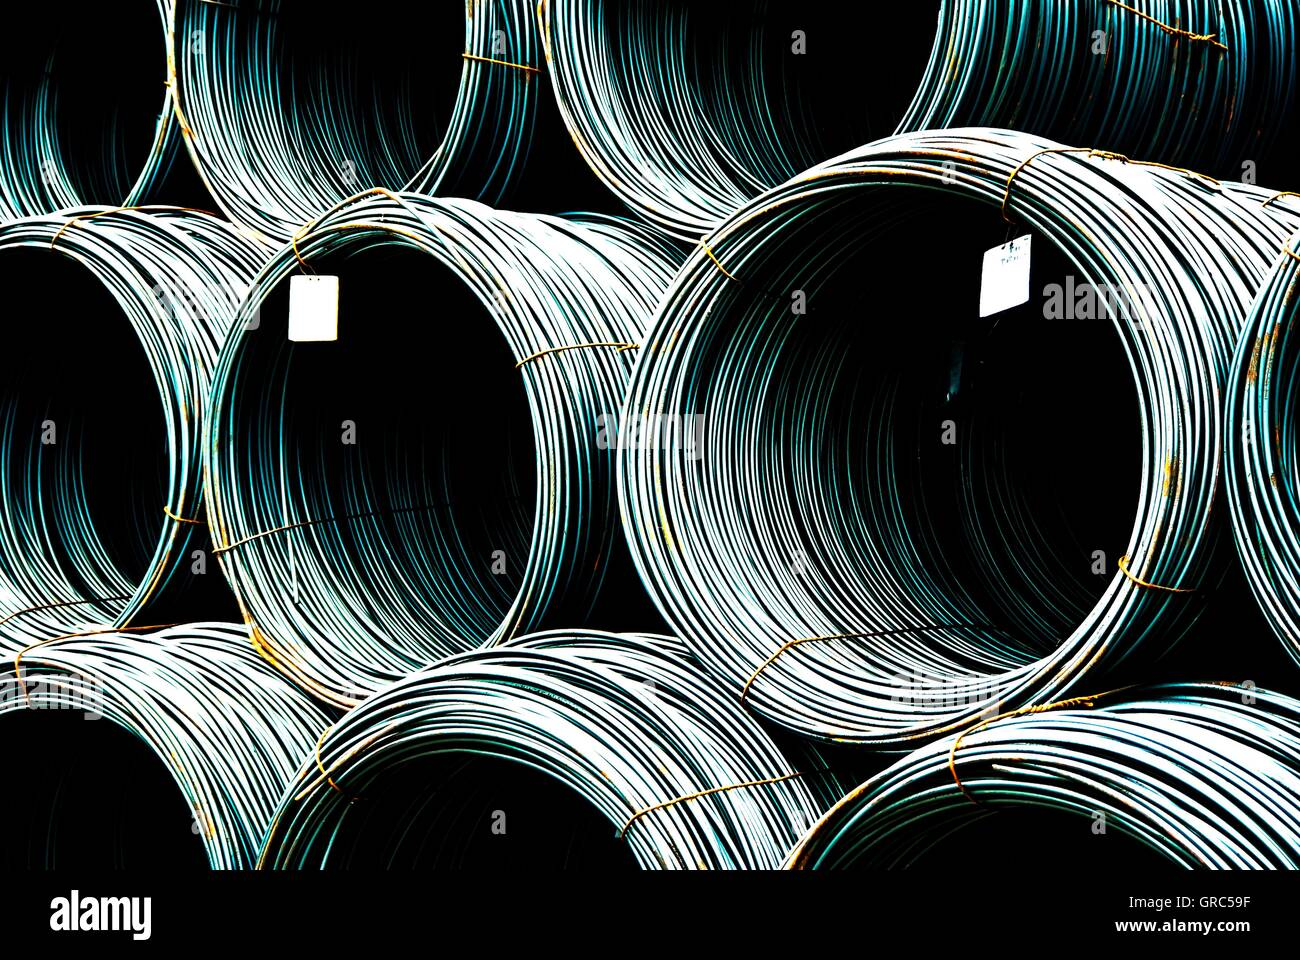 Wire Rollers 32 - Stock Image